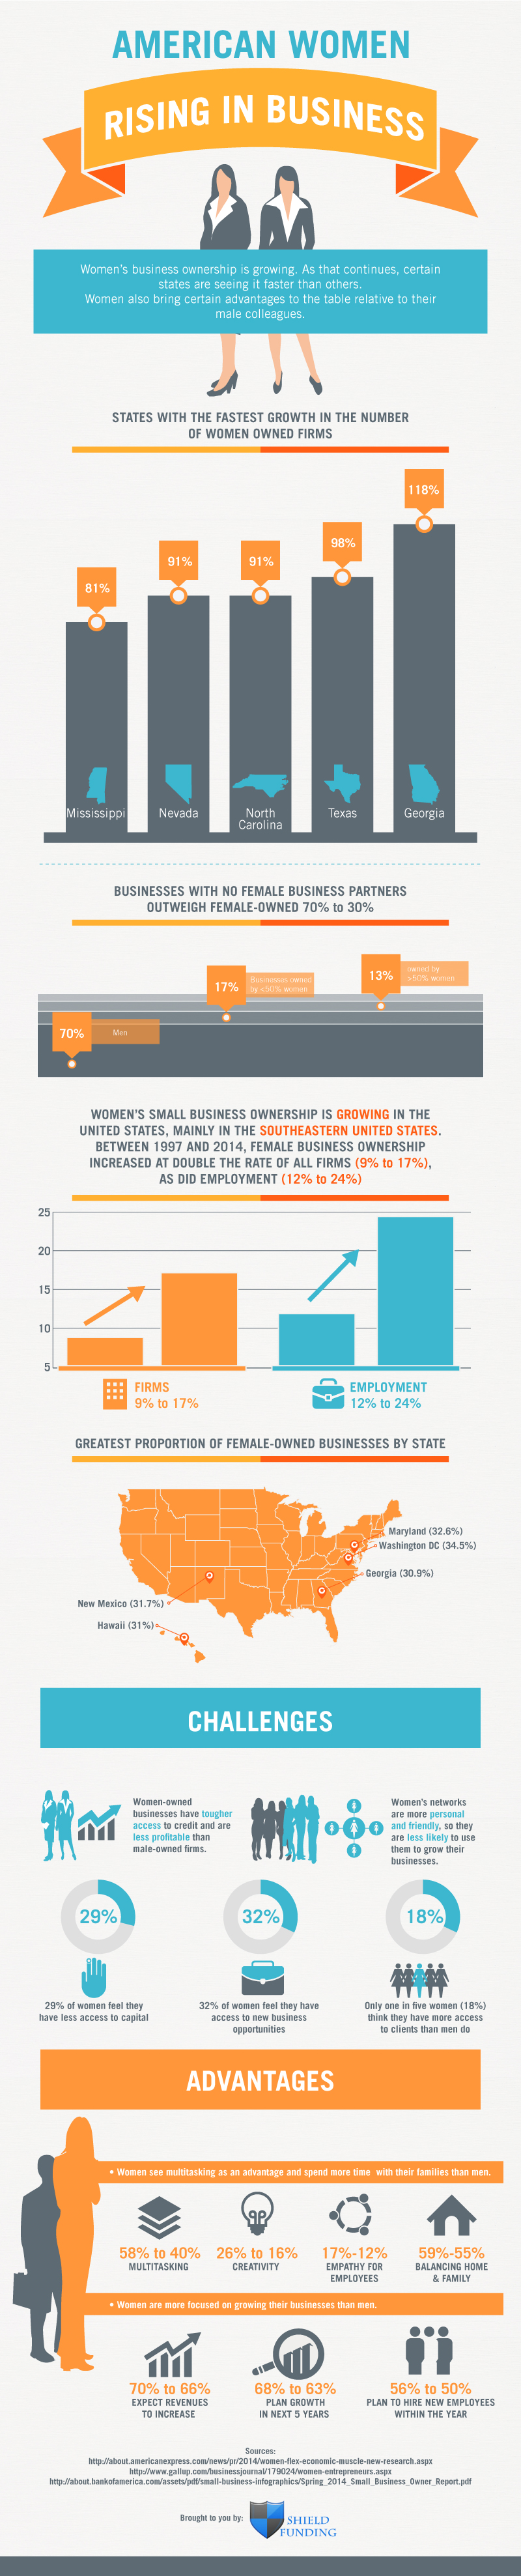 American Women Rising in Business